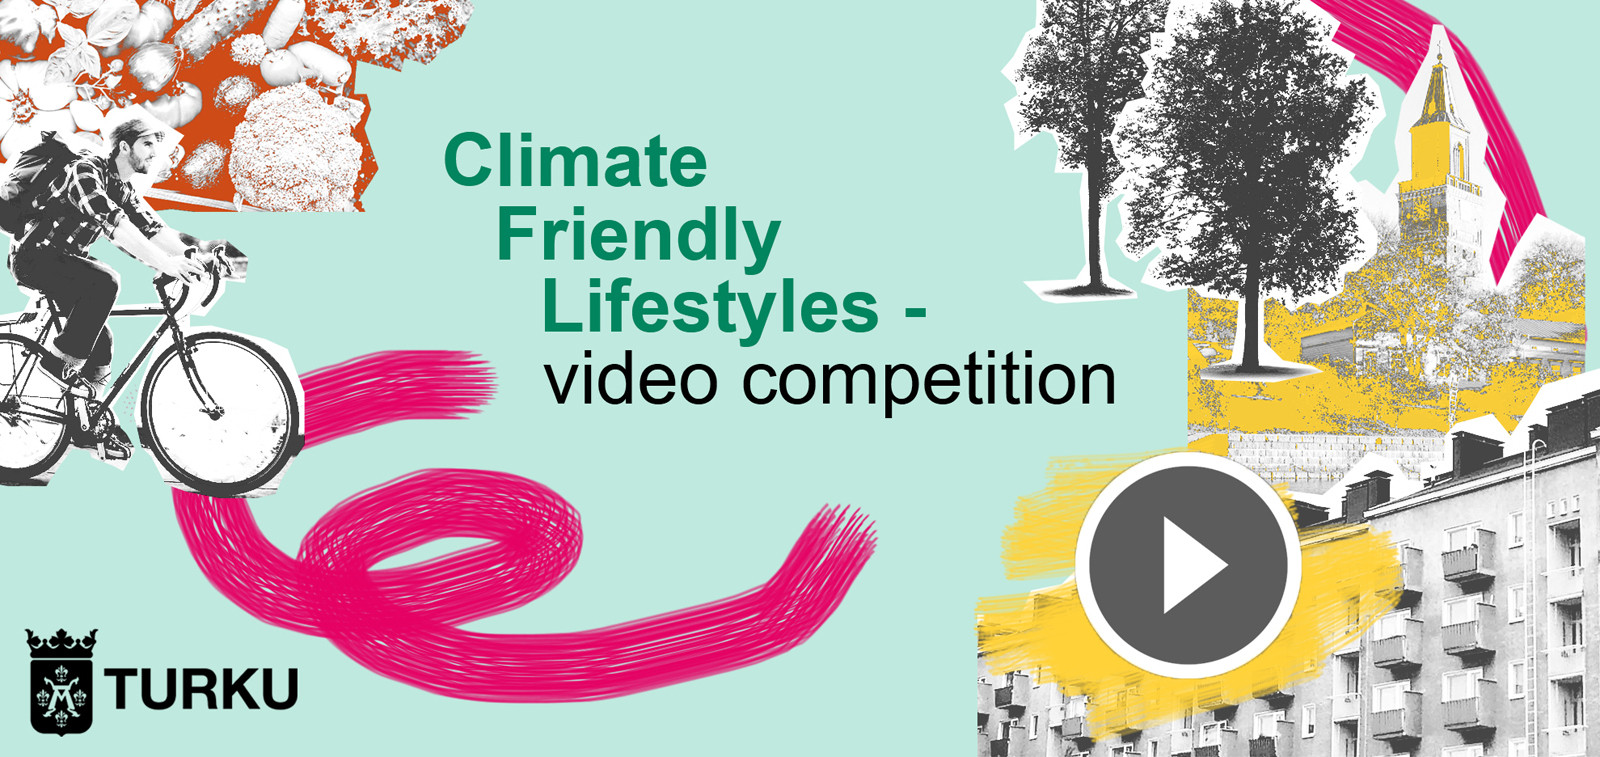 1.5 degree life video competition